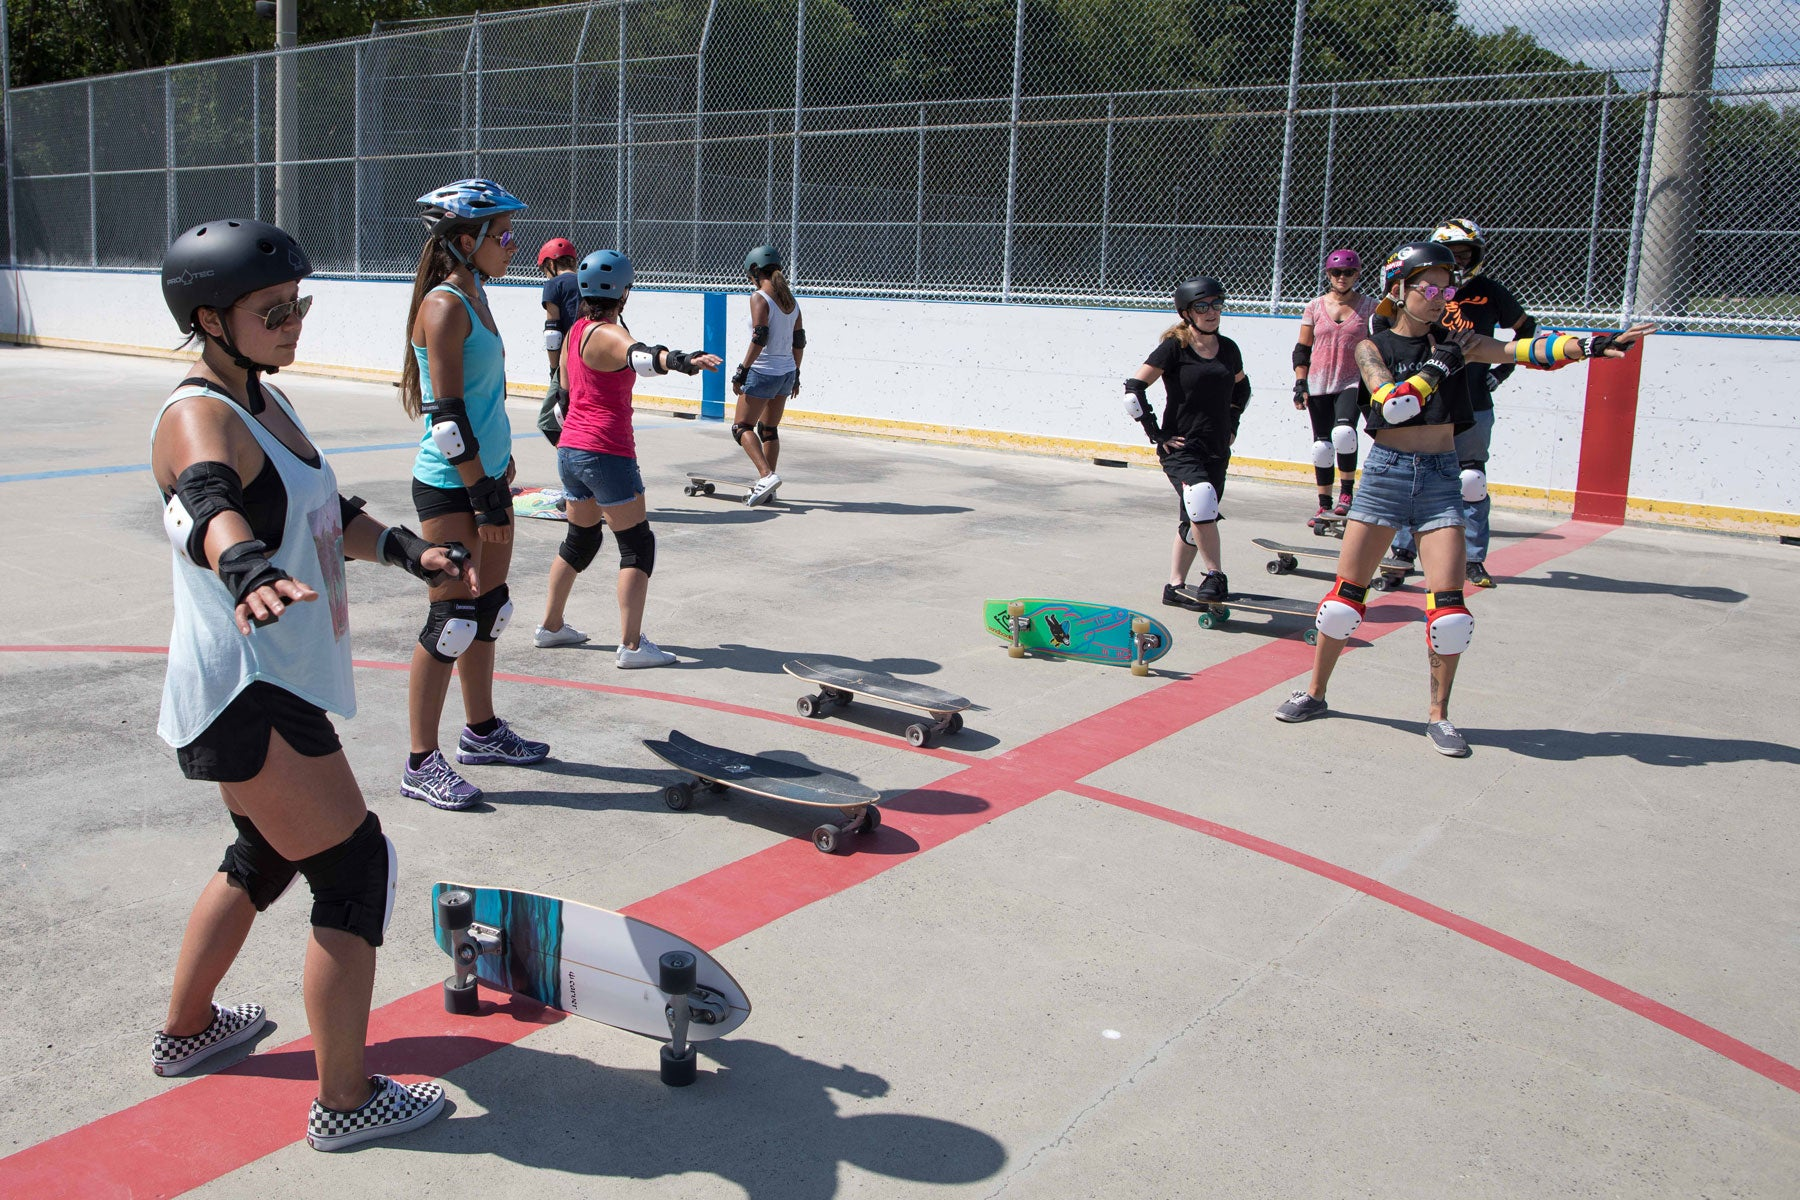 Surf the Greats learn to Surfskate Carver Skateboards Toronto Canada